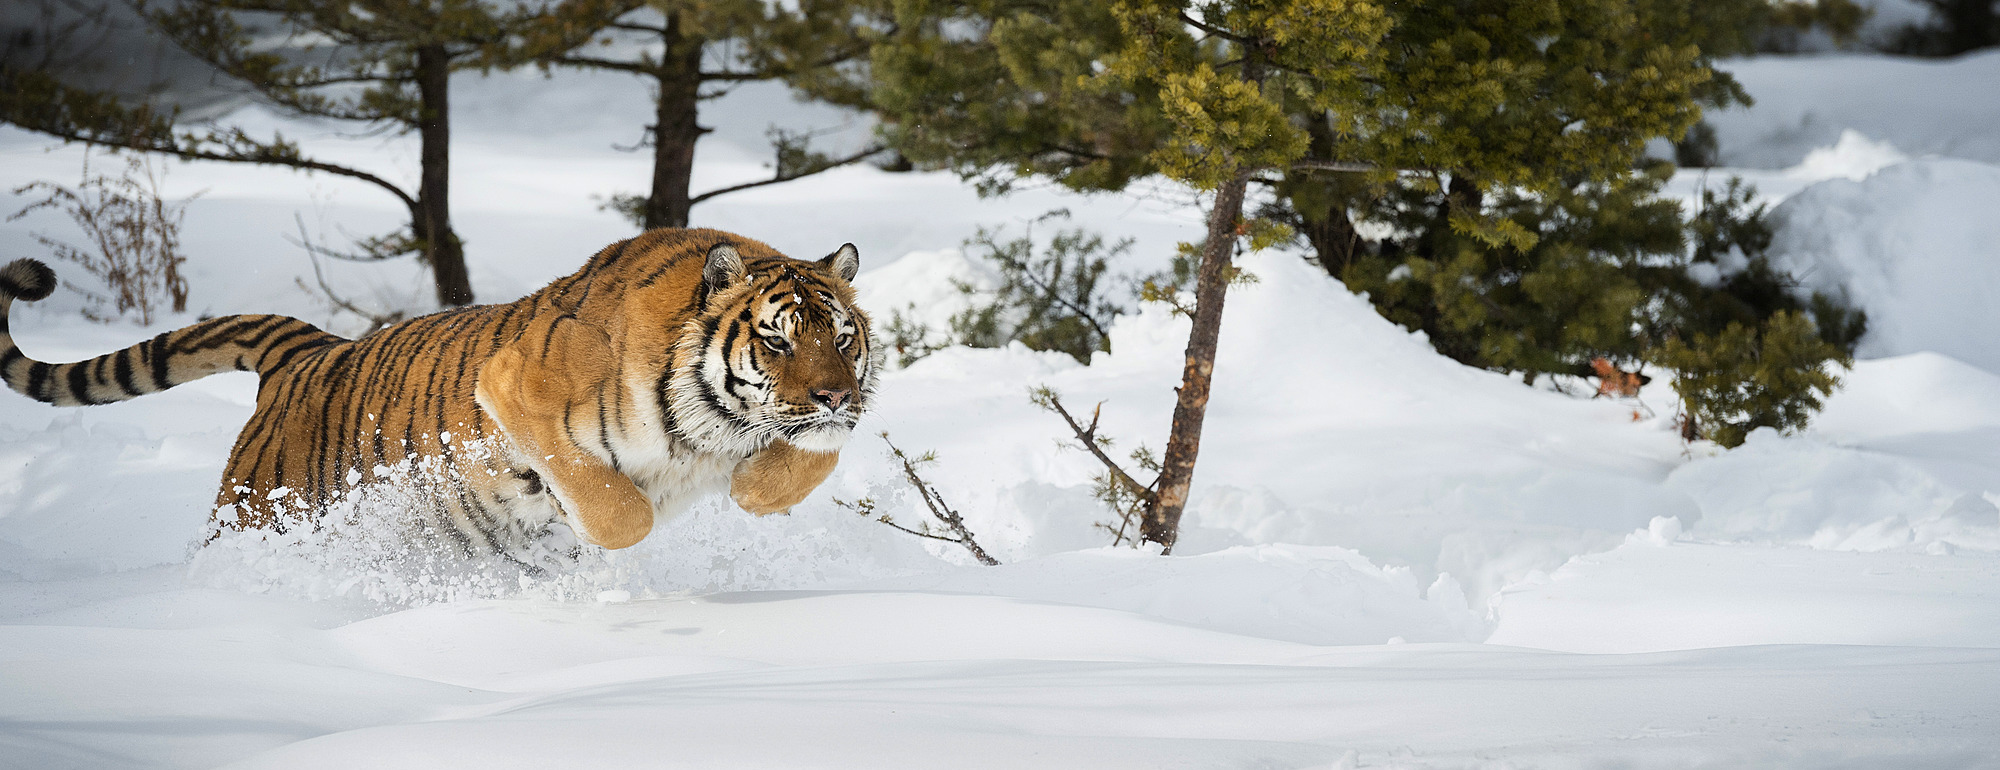 1185-40 ( Janette Hil ) - Siberian Tiger (Panthera tigris altaica), Montana, United States of America, North America